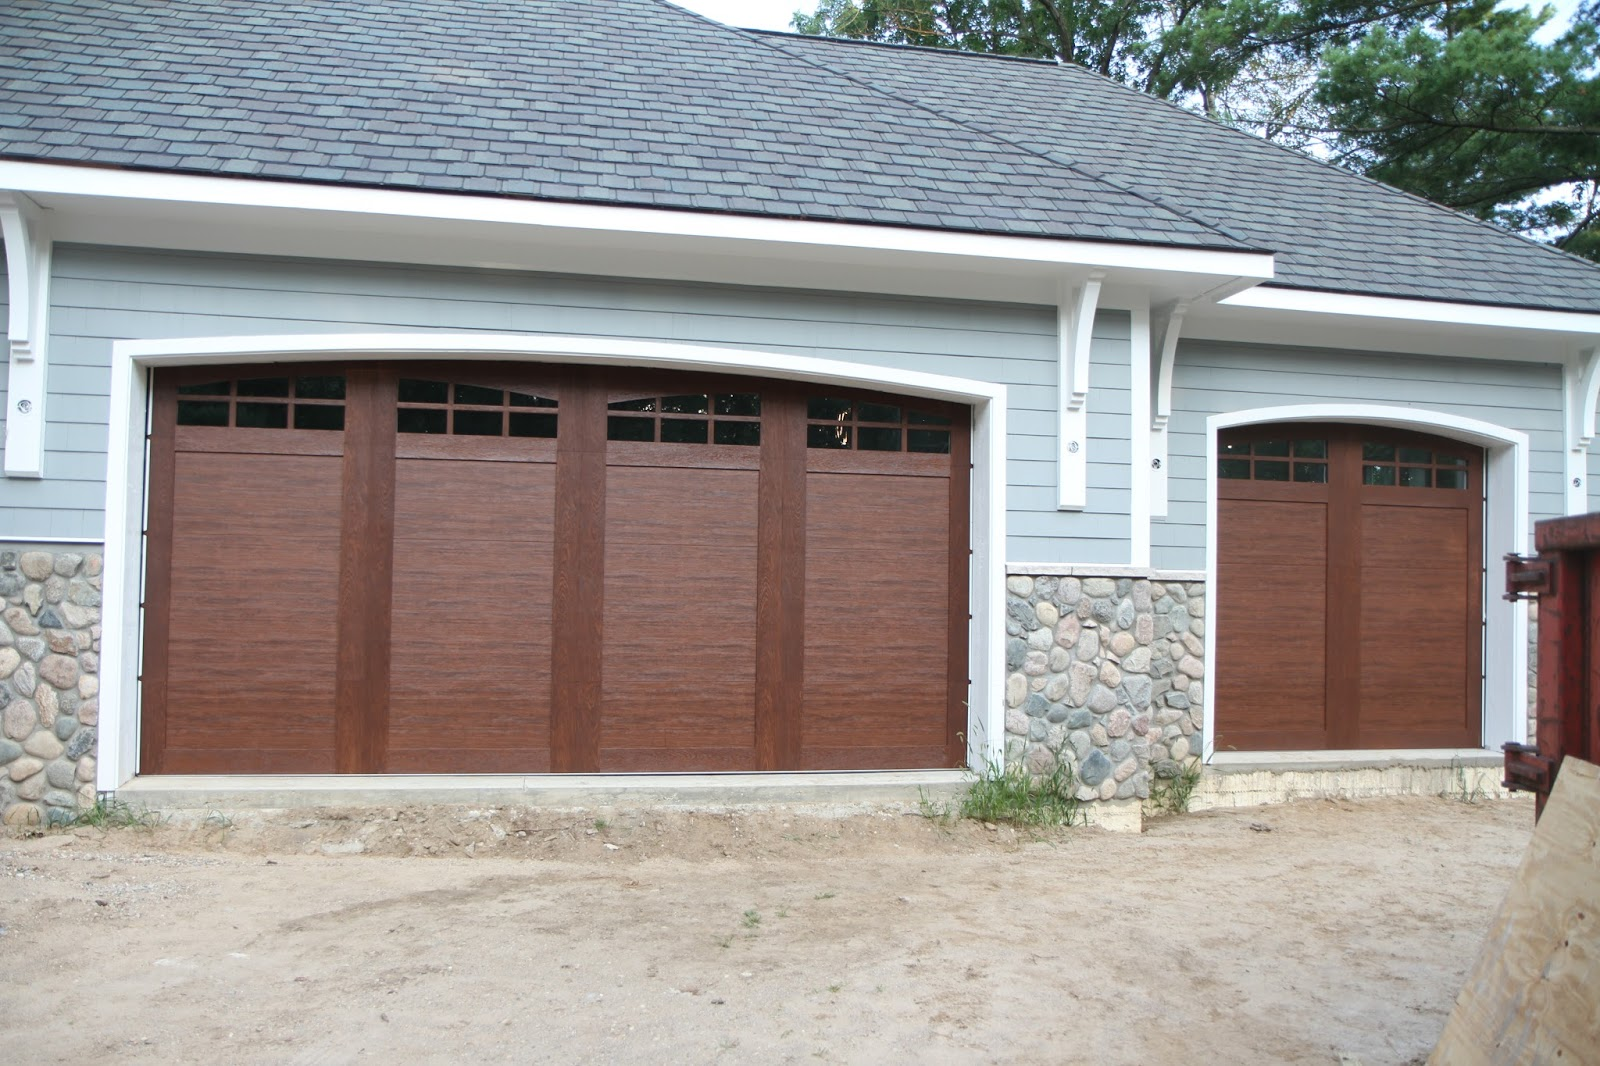 Our lake fortress garage doors the mis order that i mentioned earlier is on the large garage door the glass comes in two styles that cloplay calls arch3 and arch3a rubansaba